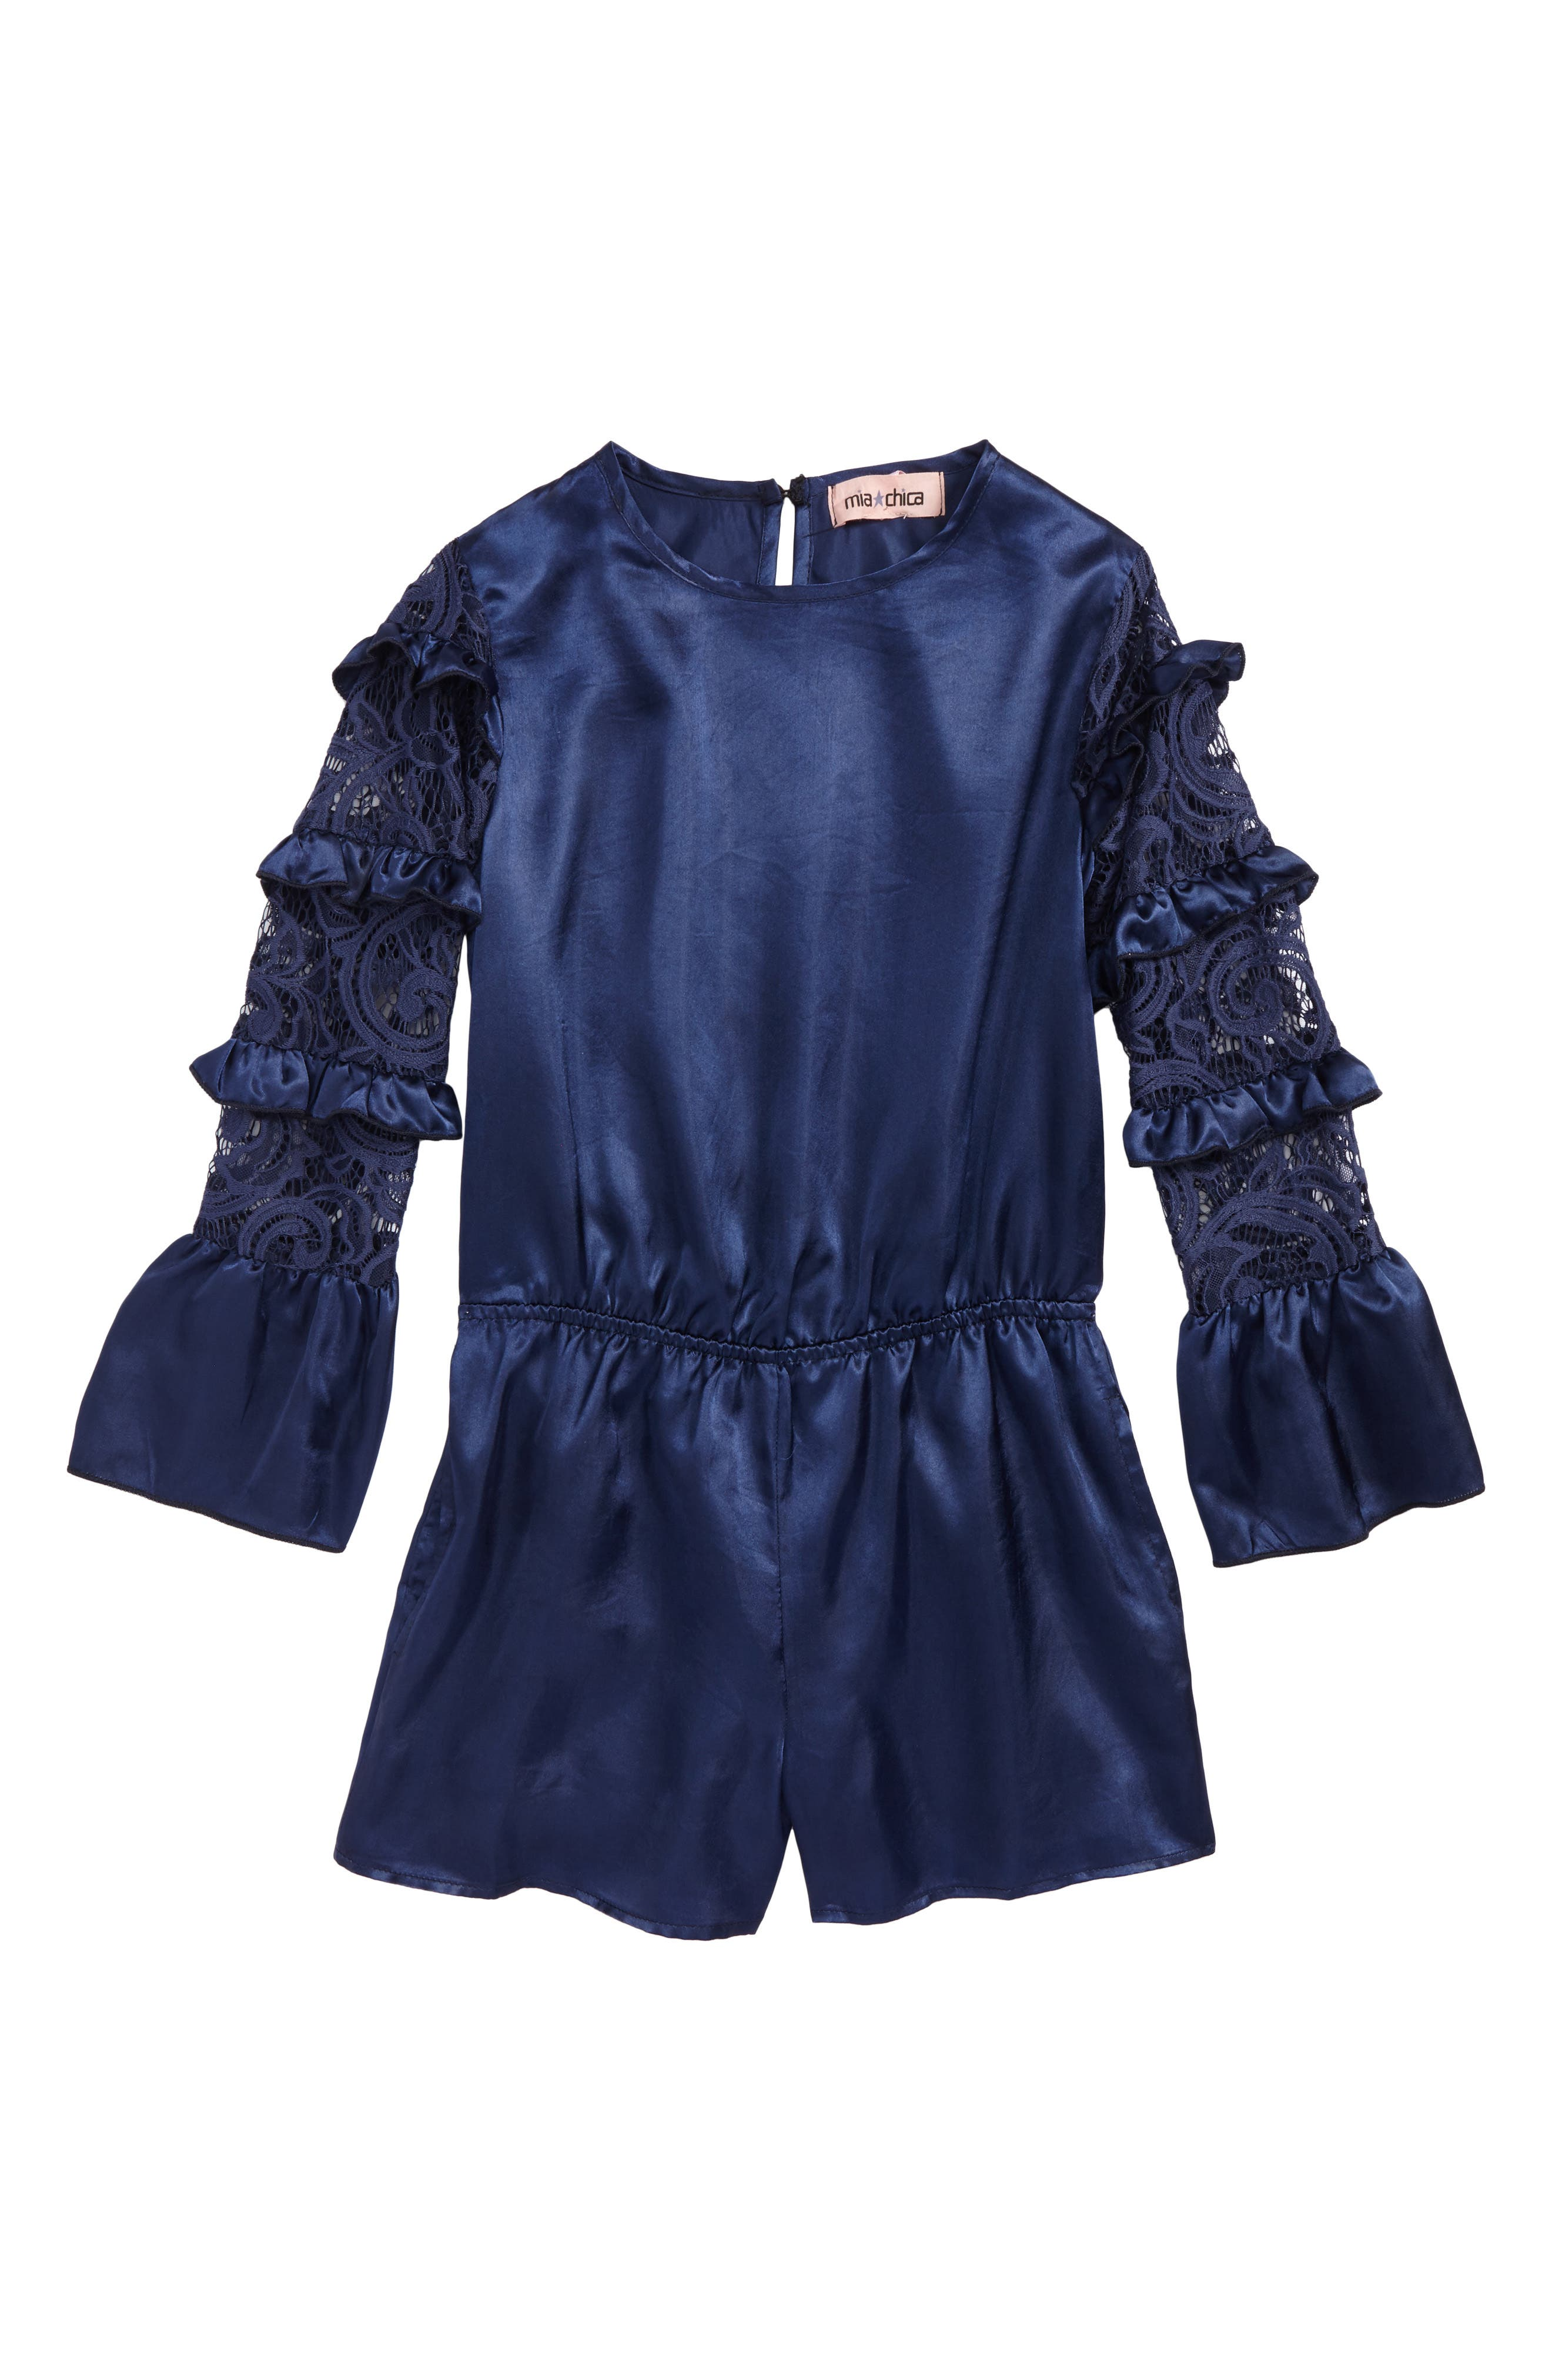 Lace Sleeve Satin Romper,                         Main,                         color, Navy